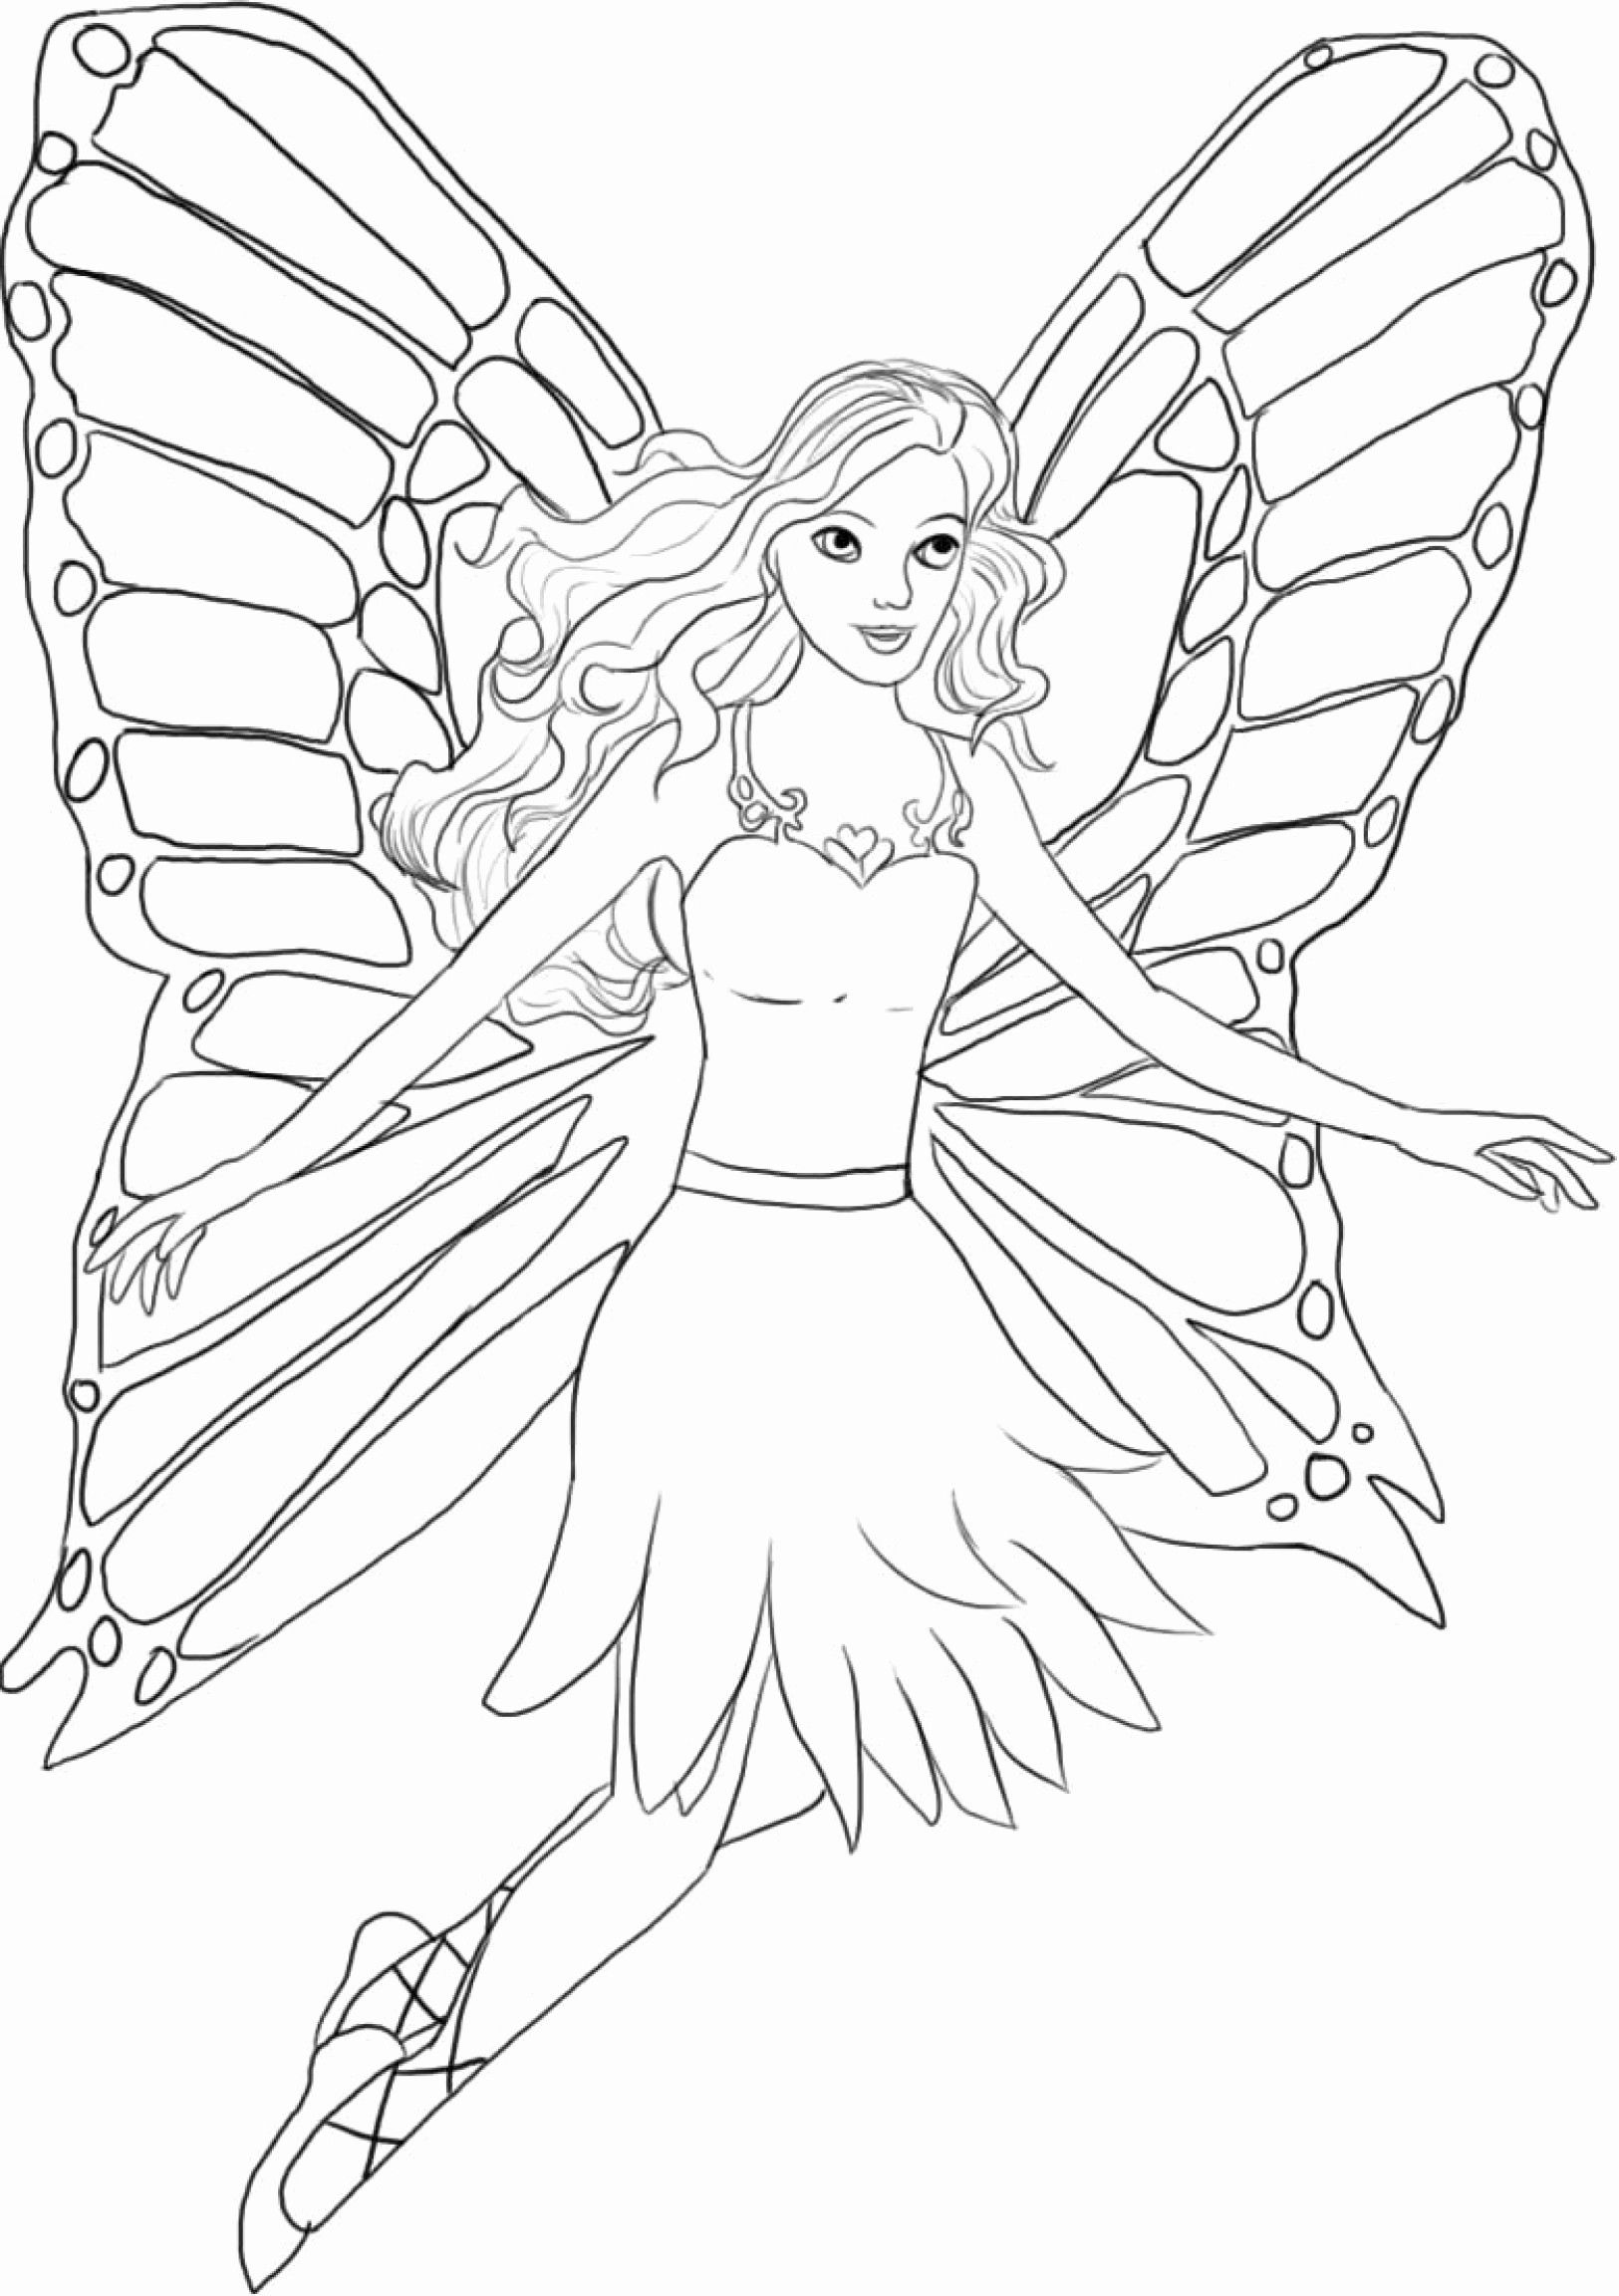 Printable Fairy Princess Coloring Pages Through The Thousands Of Images Online Regarding Printable Fairy Princess Colorin Buku Mewarnai Warna Tutorial Boneka